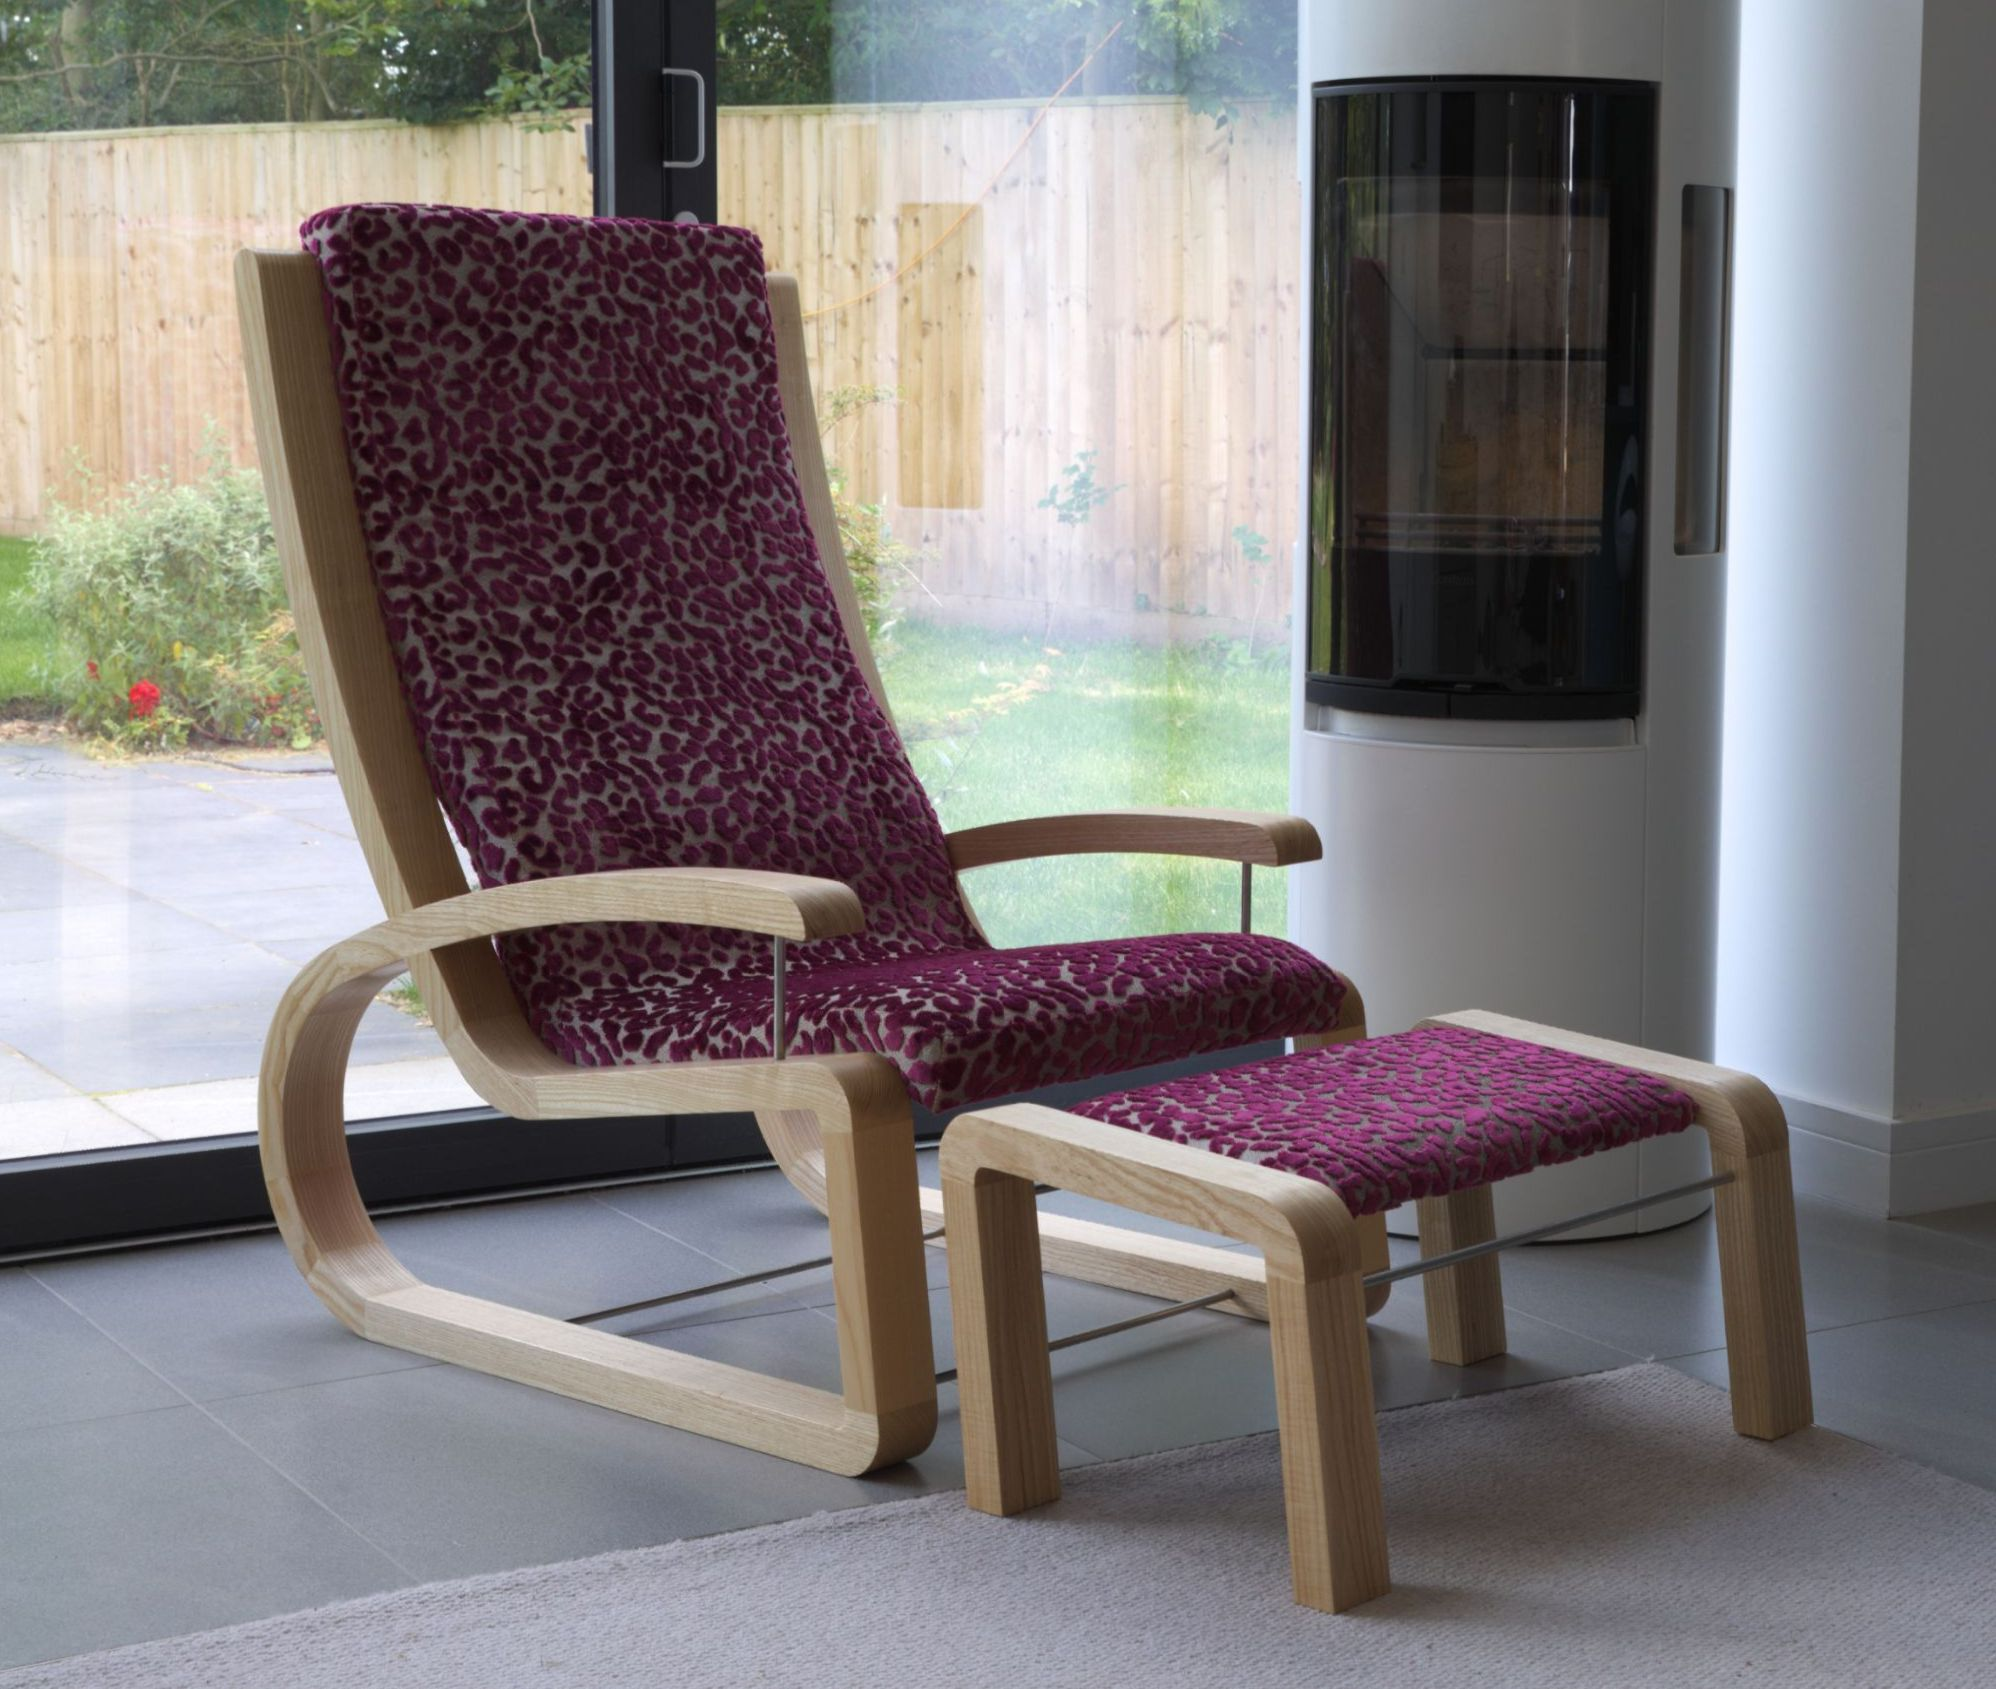 Lounge chair with footstool